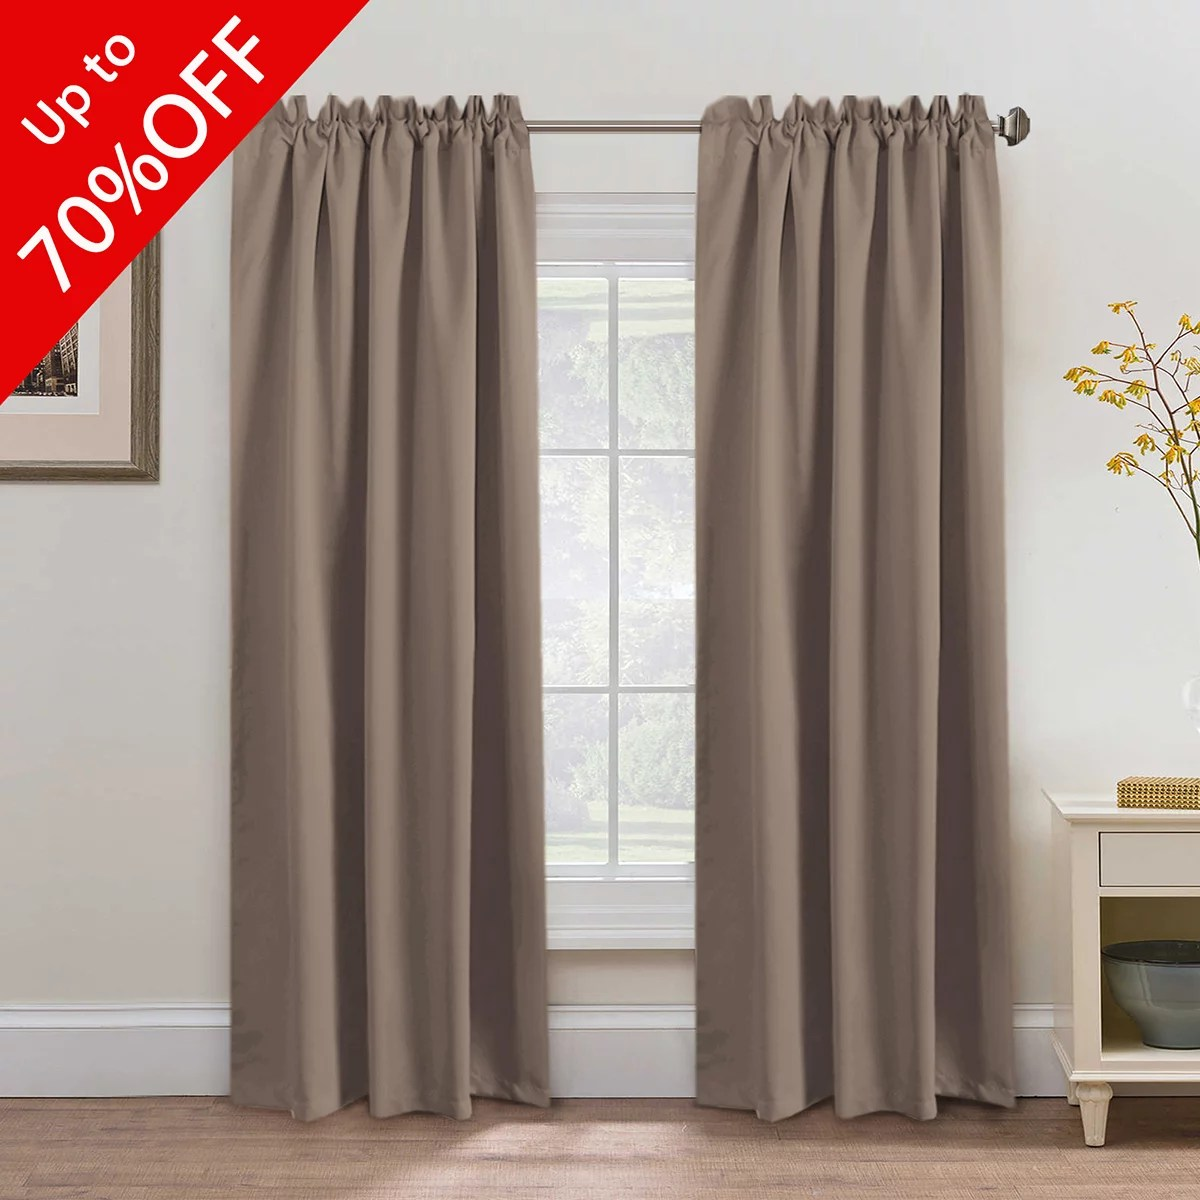 Blackout Thermal Insulated Curtains Drapes Back Tab Rod Pocket Energy Efficient Bedroom Curtains Warm Taupe Sold Per Pair 52wx84l Inch Walmart Com Walmart Com